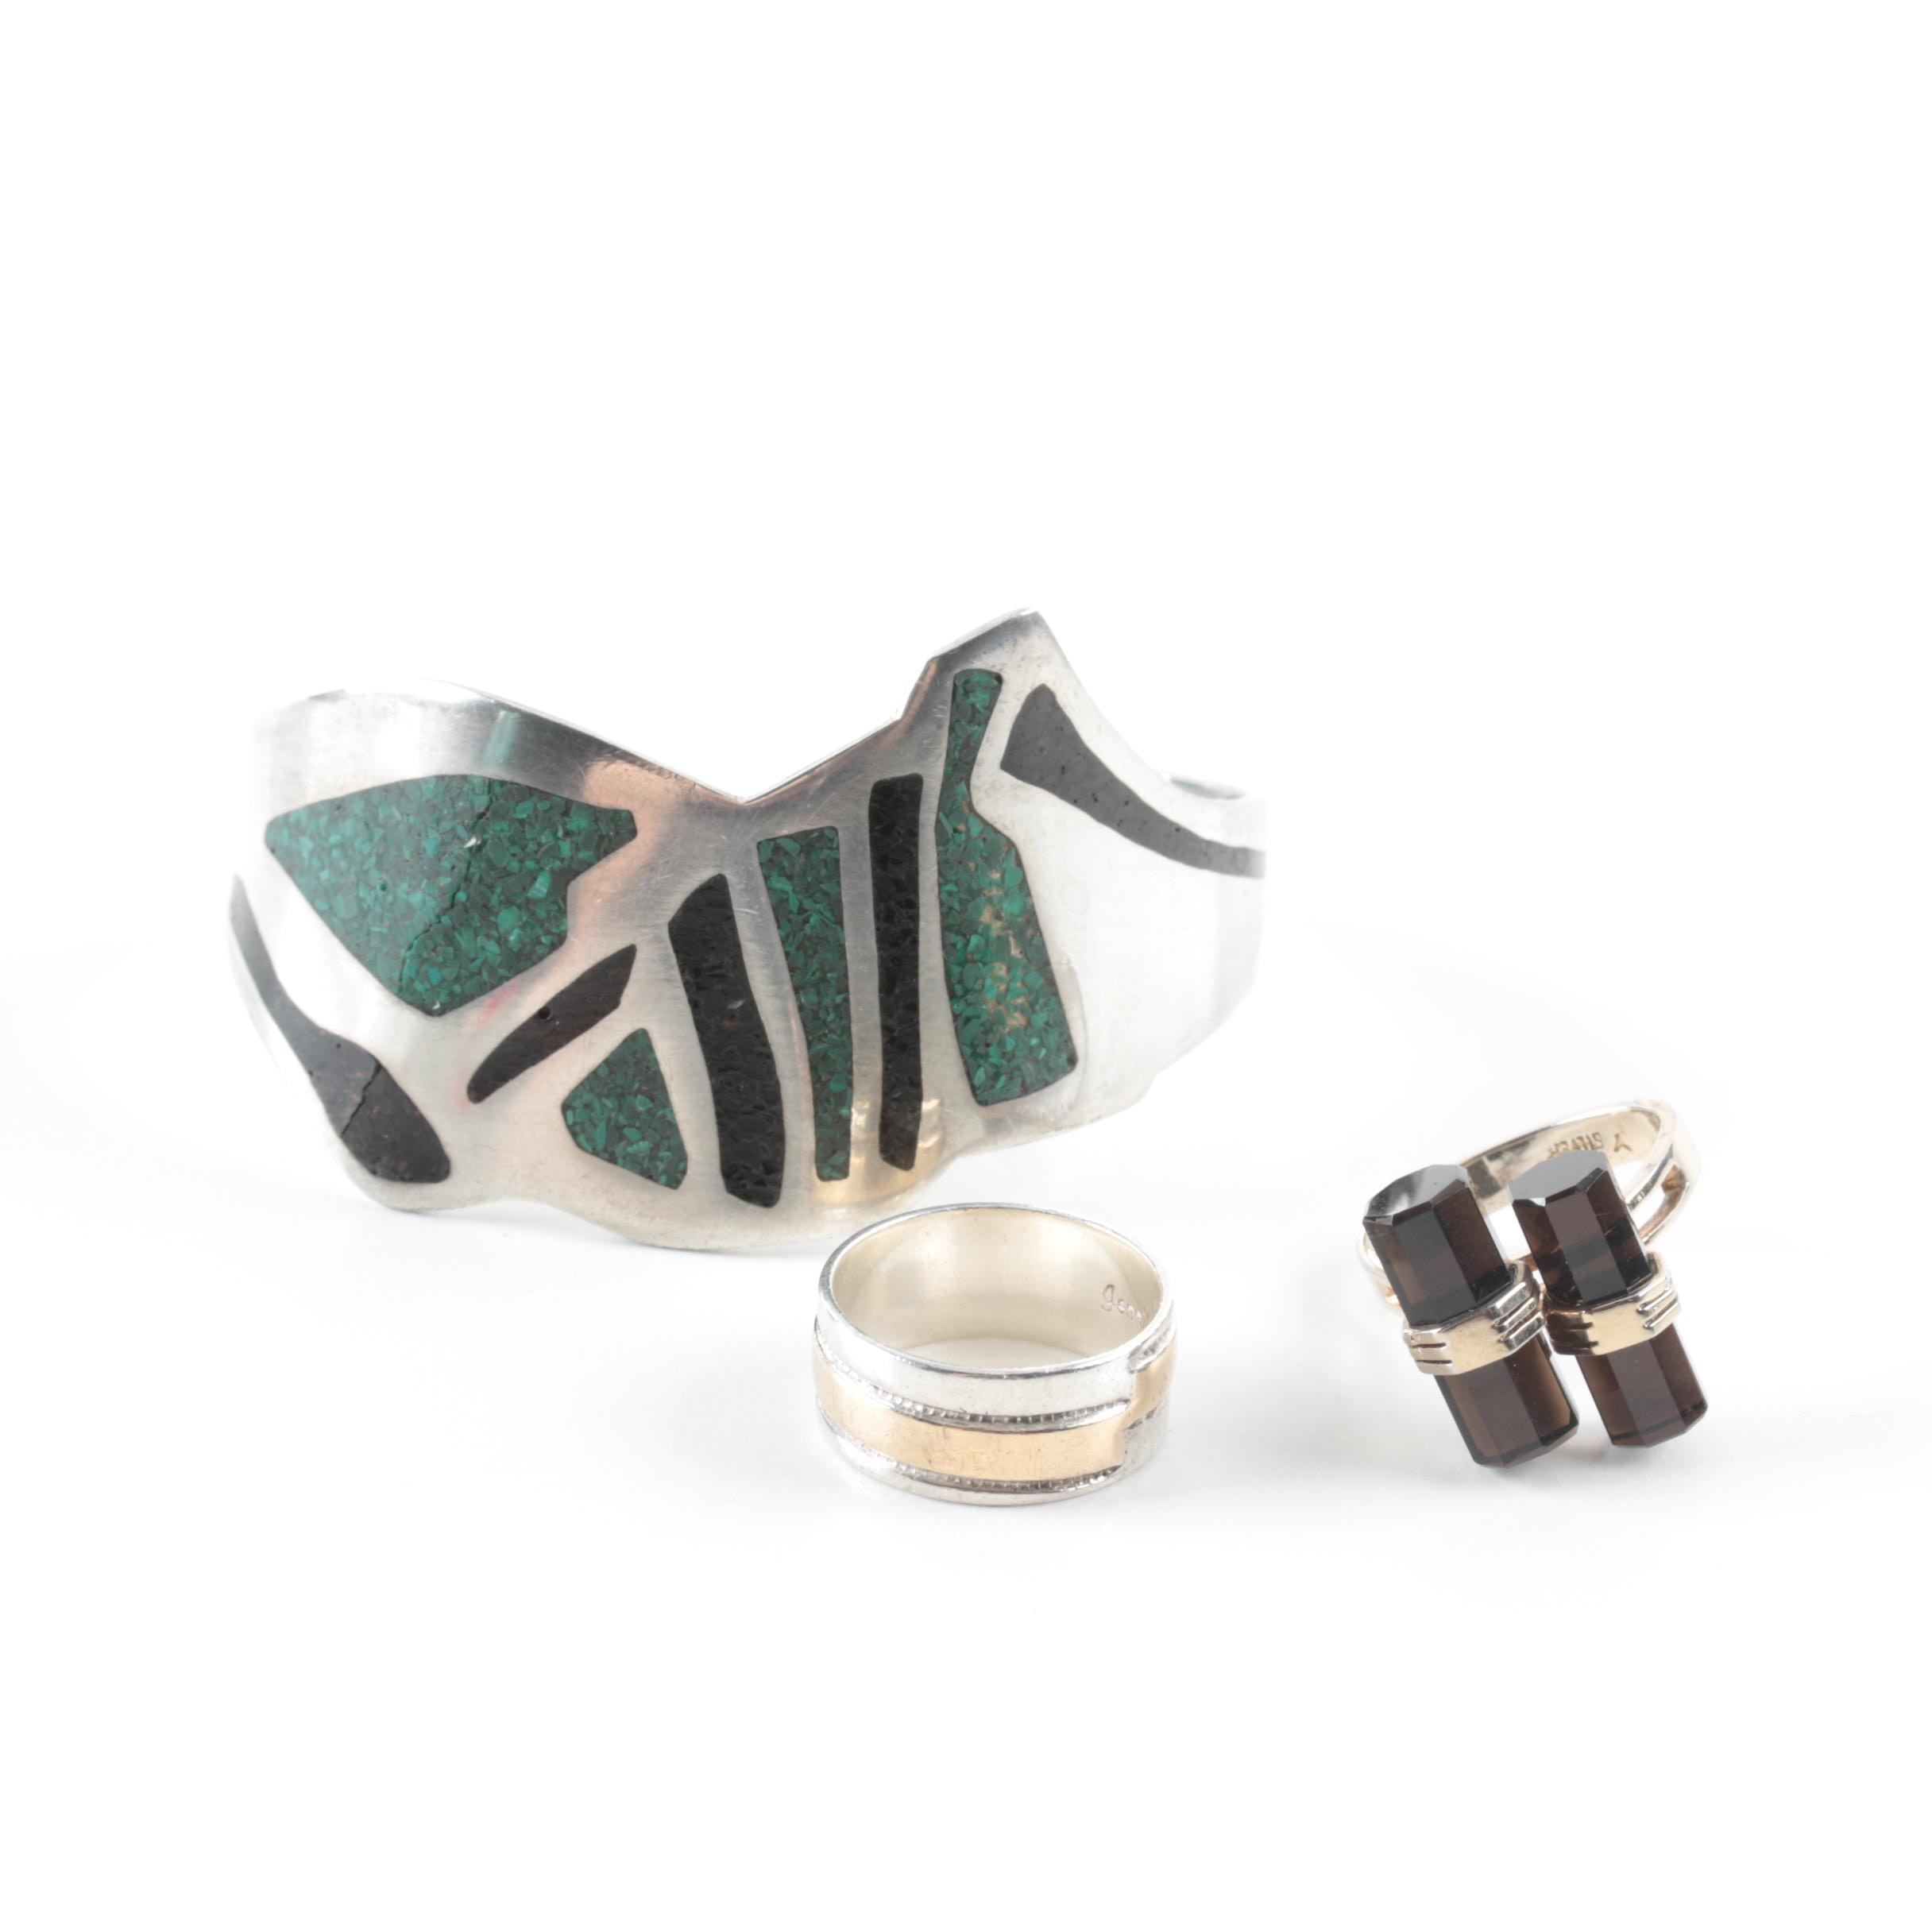 Jewelry Assortment Including Sterling Silver and Stone Inlay